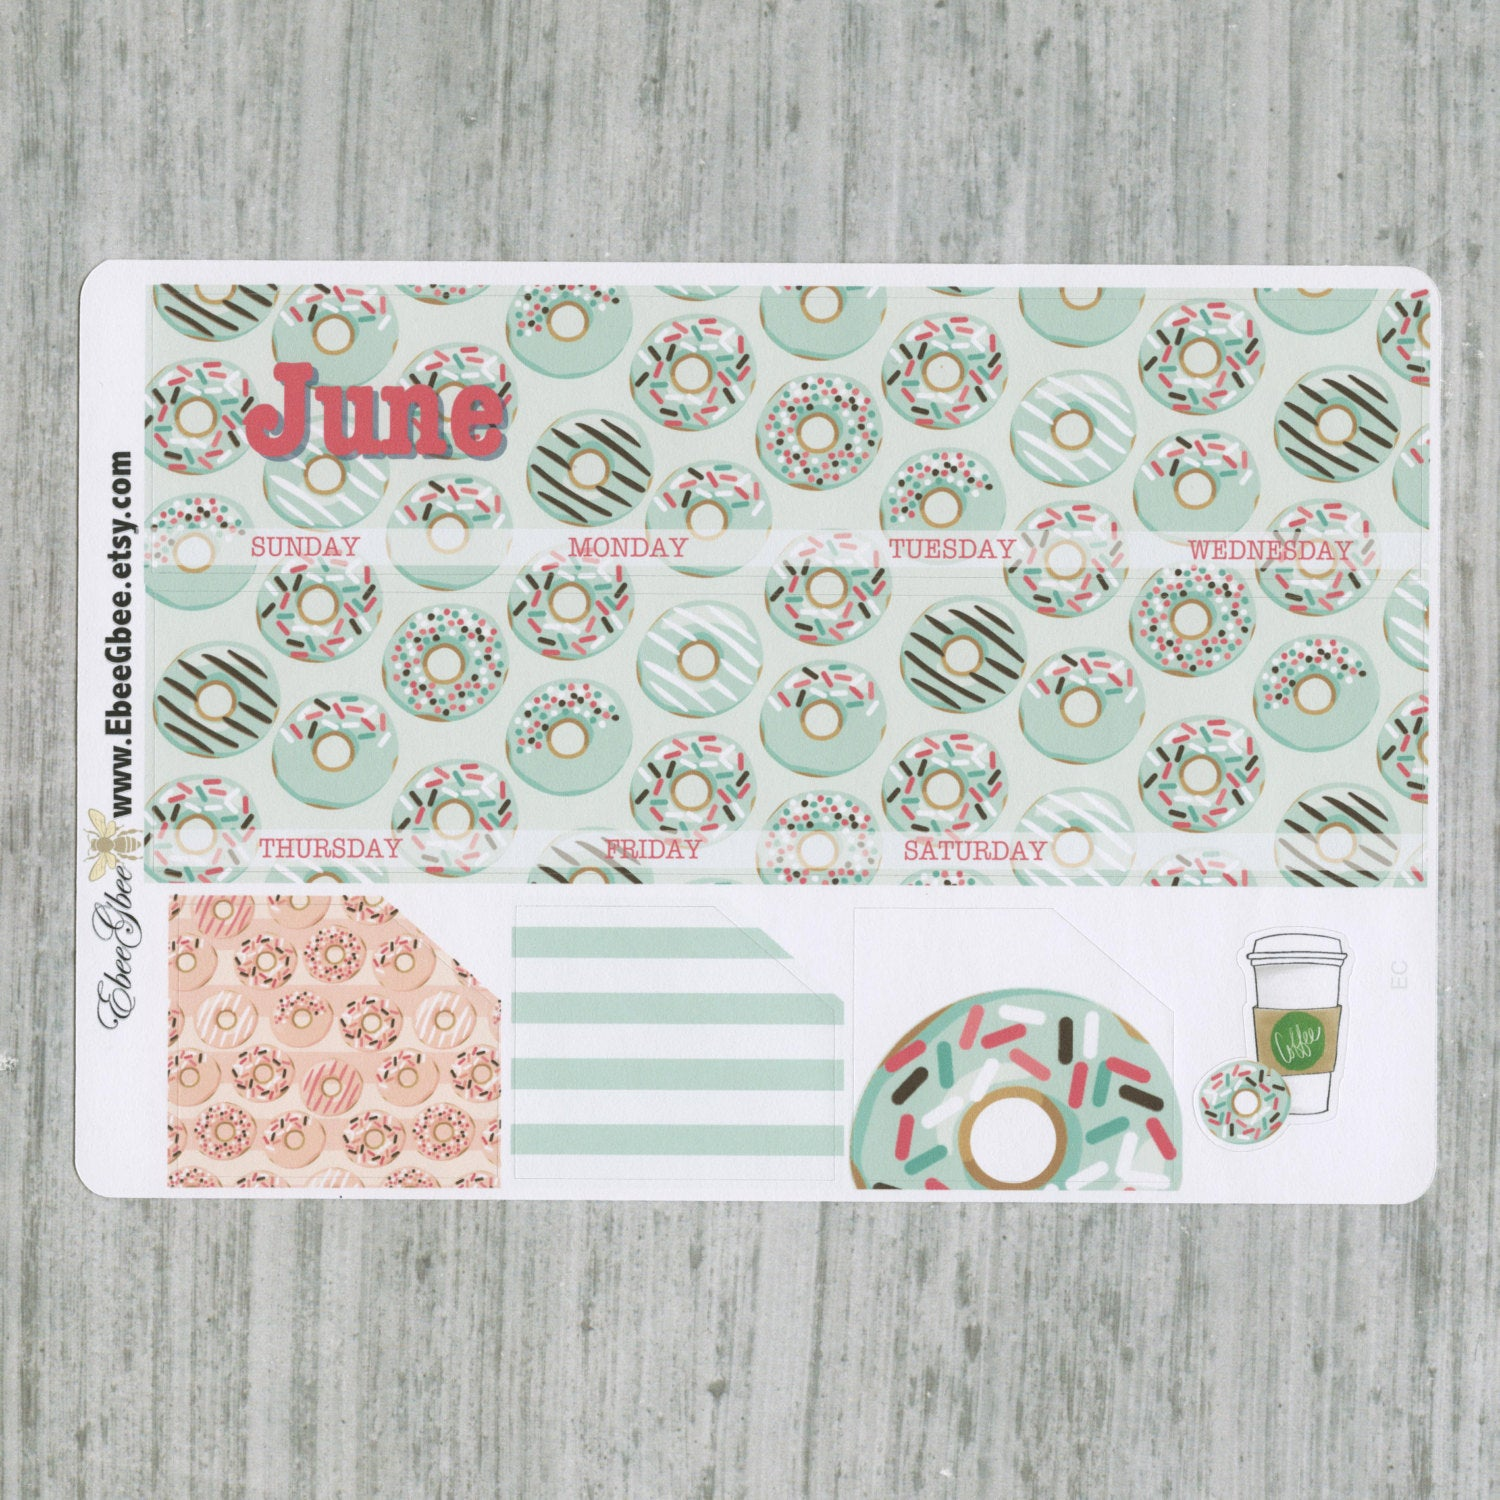 DONUTS MONTHLY Layout Planner Stickers | You Pick Your Month | Mint Pine Peach Rose